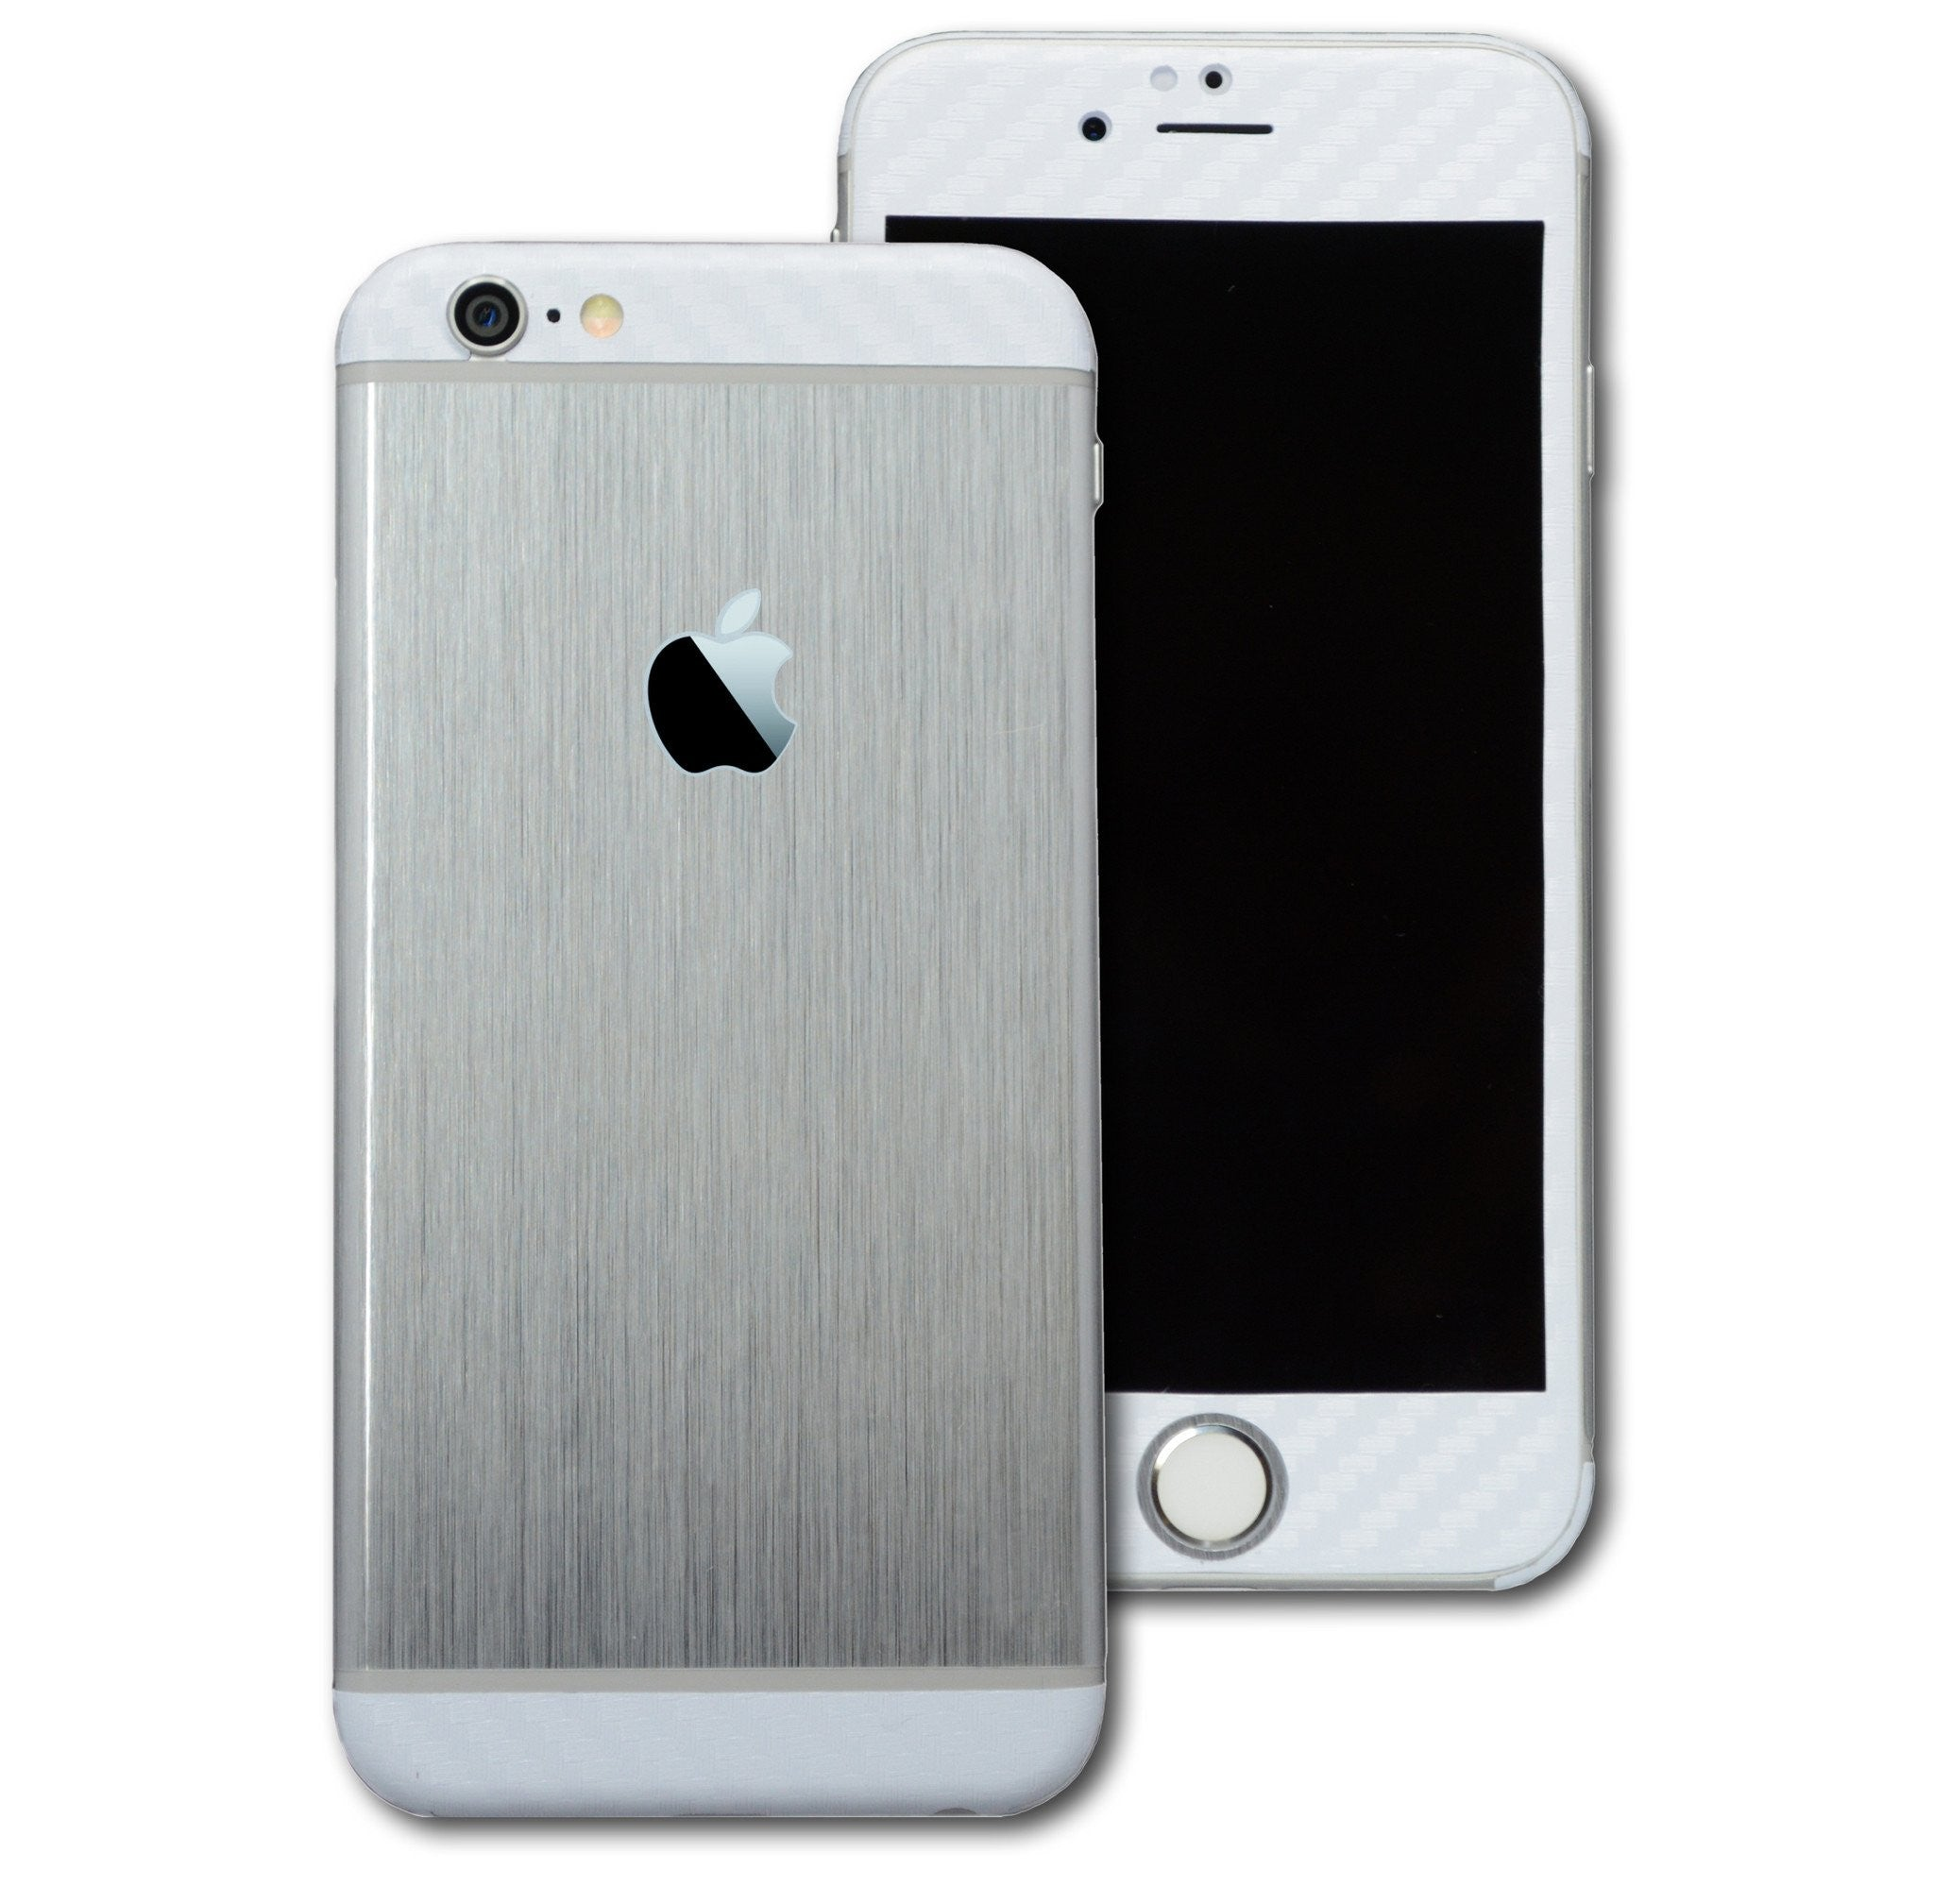 iPhone 6S PLUS Brushed SILVER with WHITE Carbon Fibre Skin Wrap Sticker Cover Decal Protector by EasySkinz